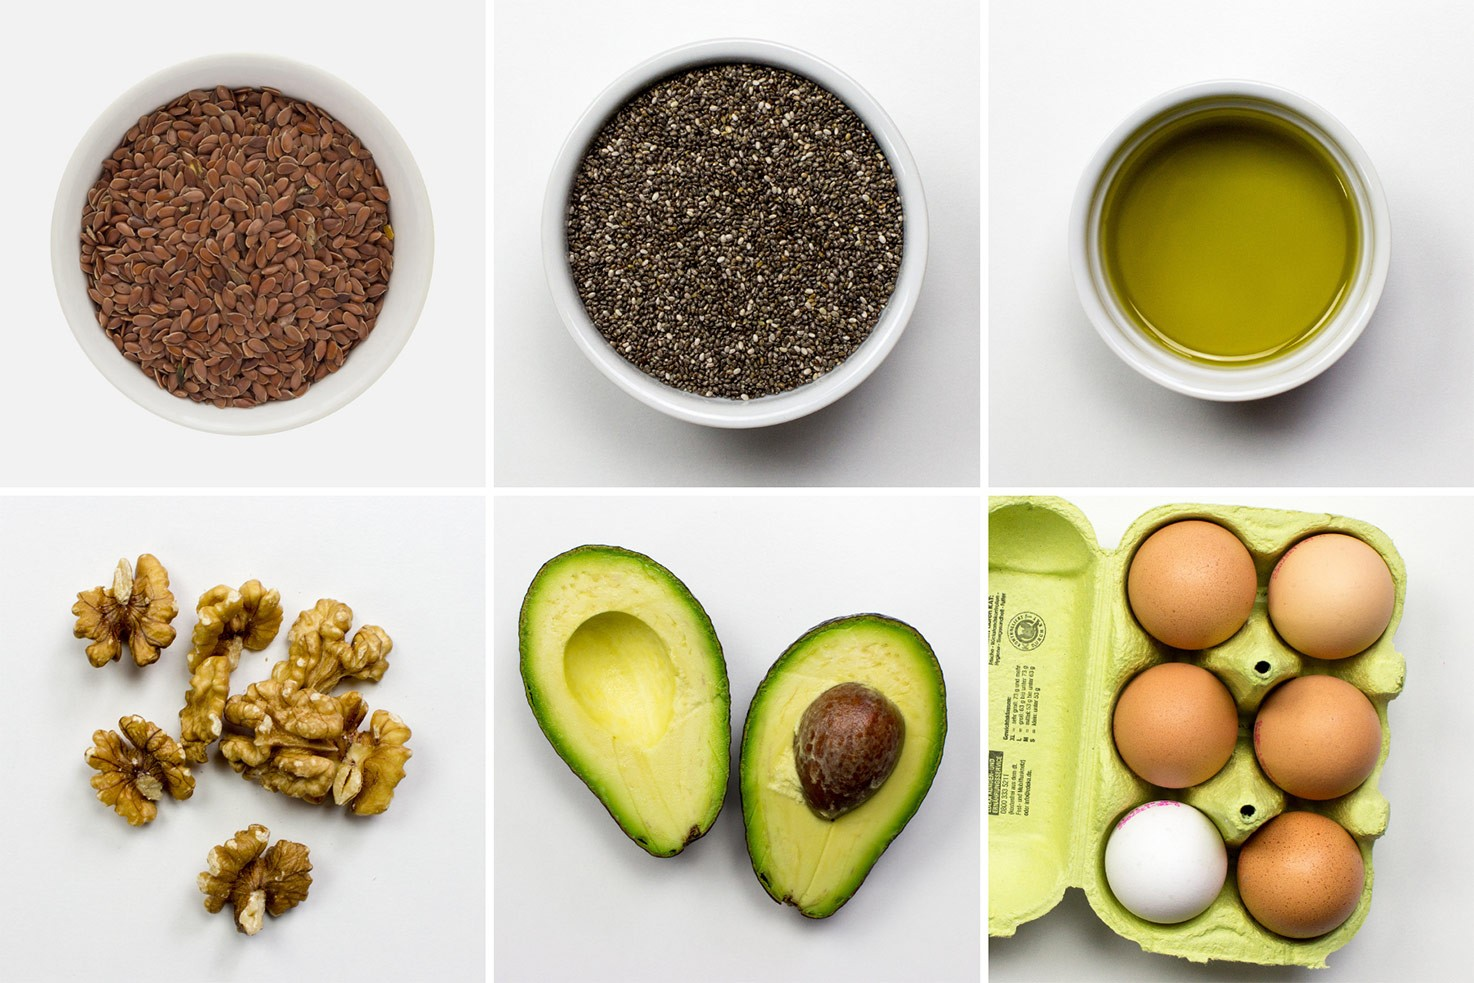 Vegetarian sources of Omega-3: flax seeds, chia seeds, olive oil, walnuts, avocado, eggs | hurrythefoodup.com